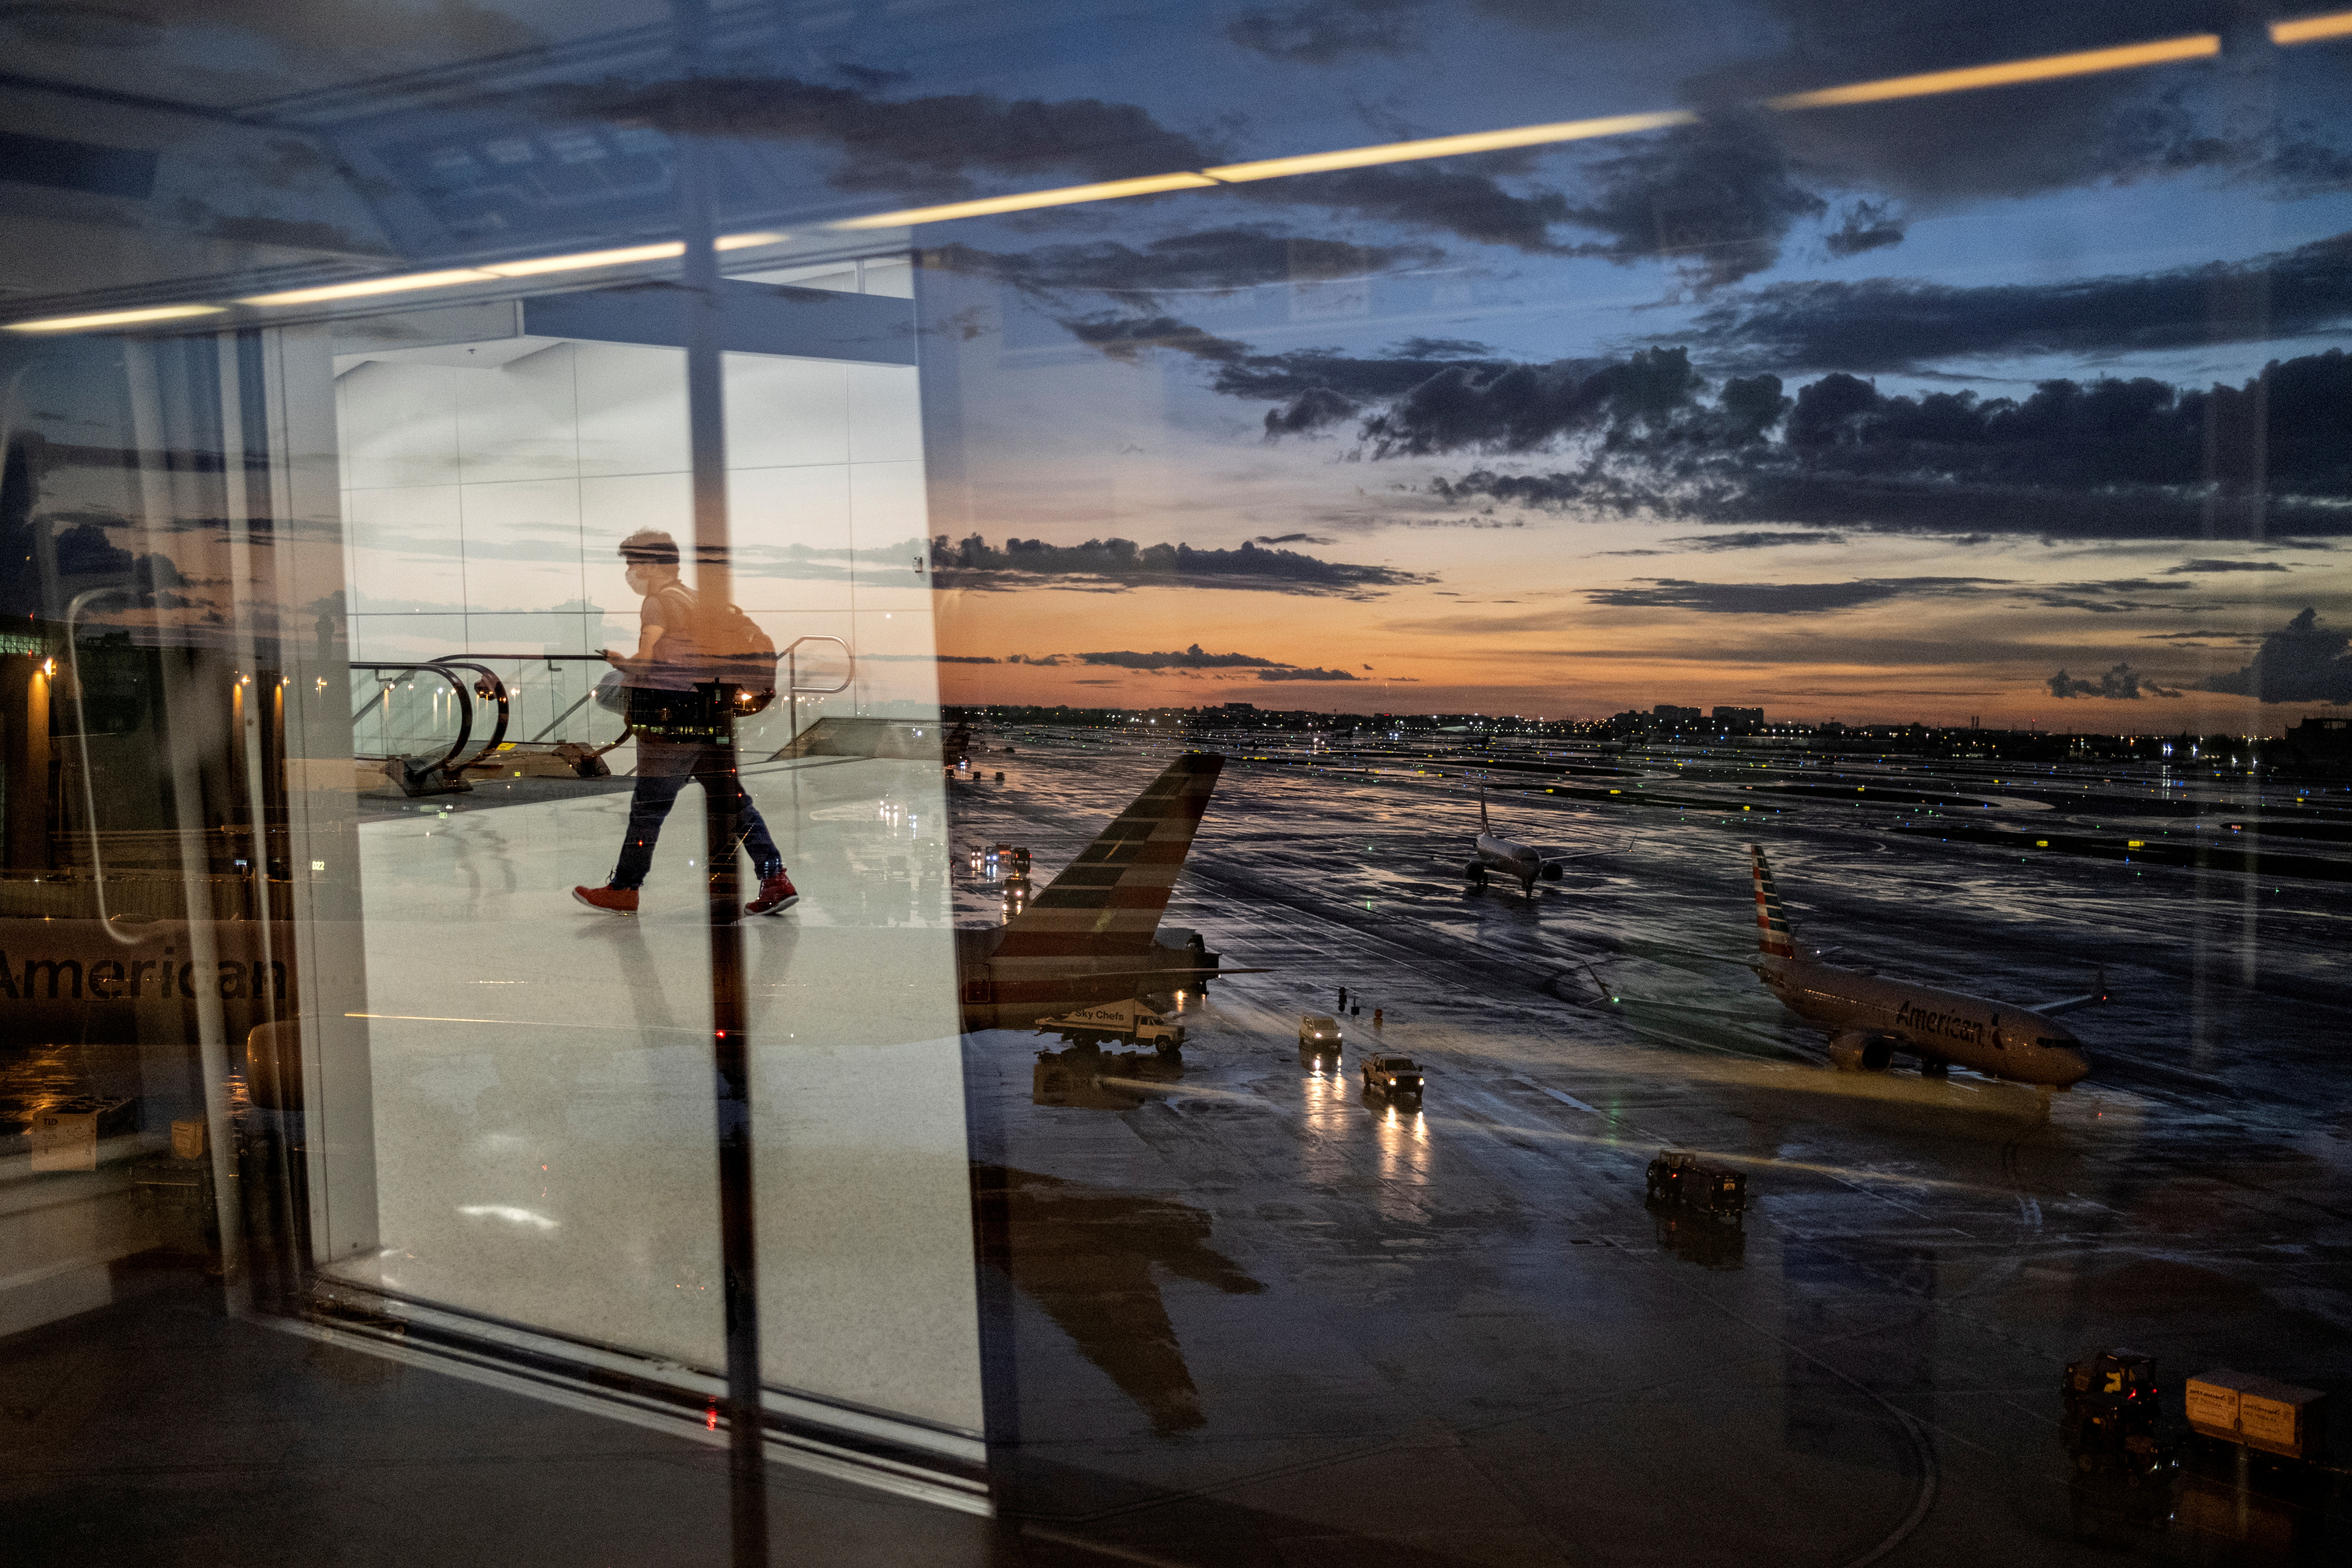 A passenger arrives at terminal D of Miami International Airport after heavy rains, as Hurricane Elsa moves towards south Florida, in Miami, U.S. July 2, 2021. Picture taken July 2, 2021. REUTERS/Carlos Barria